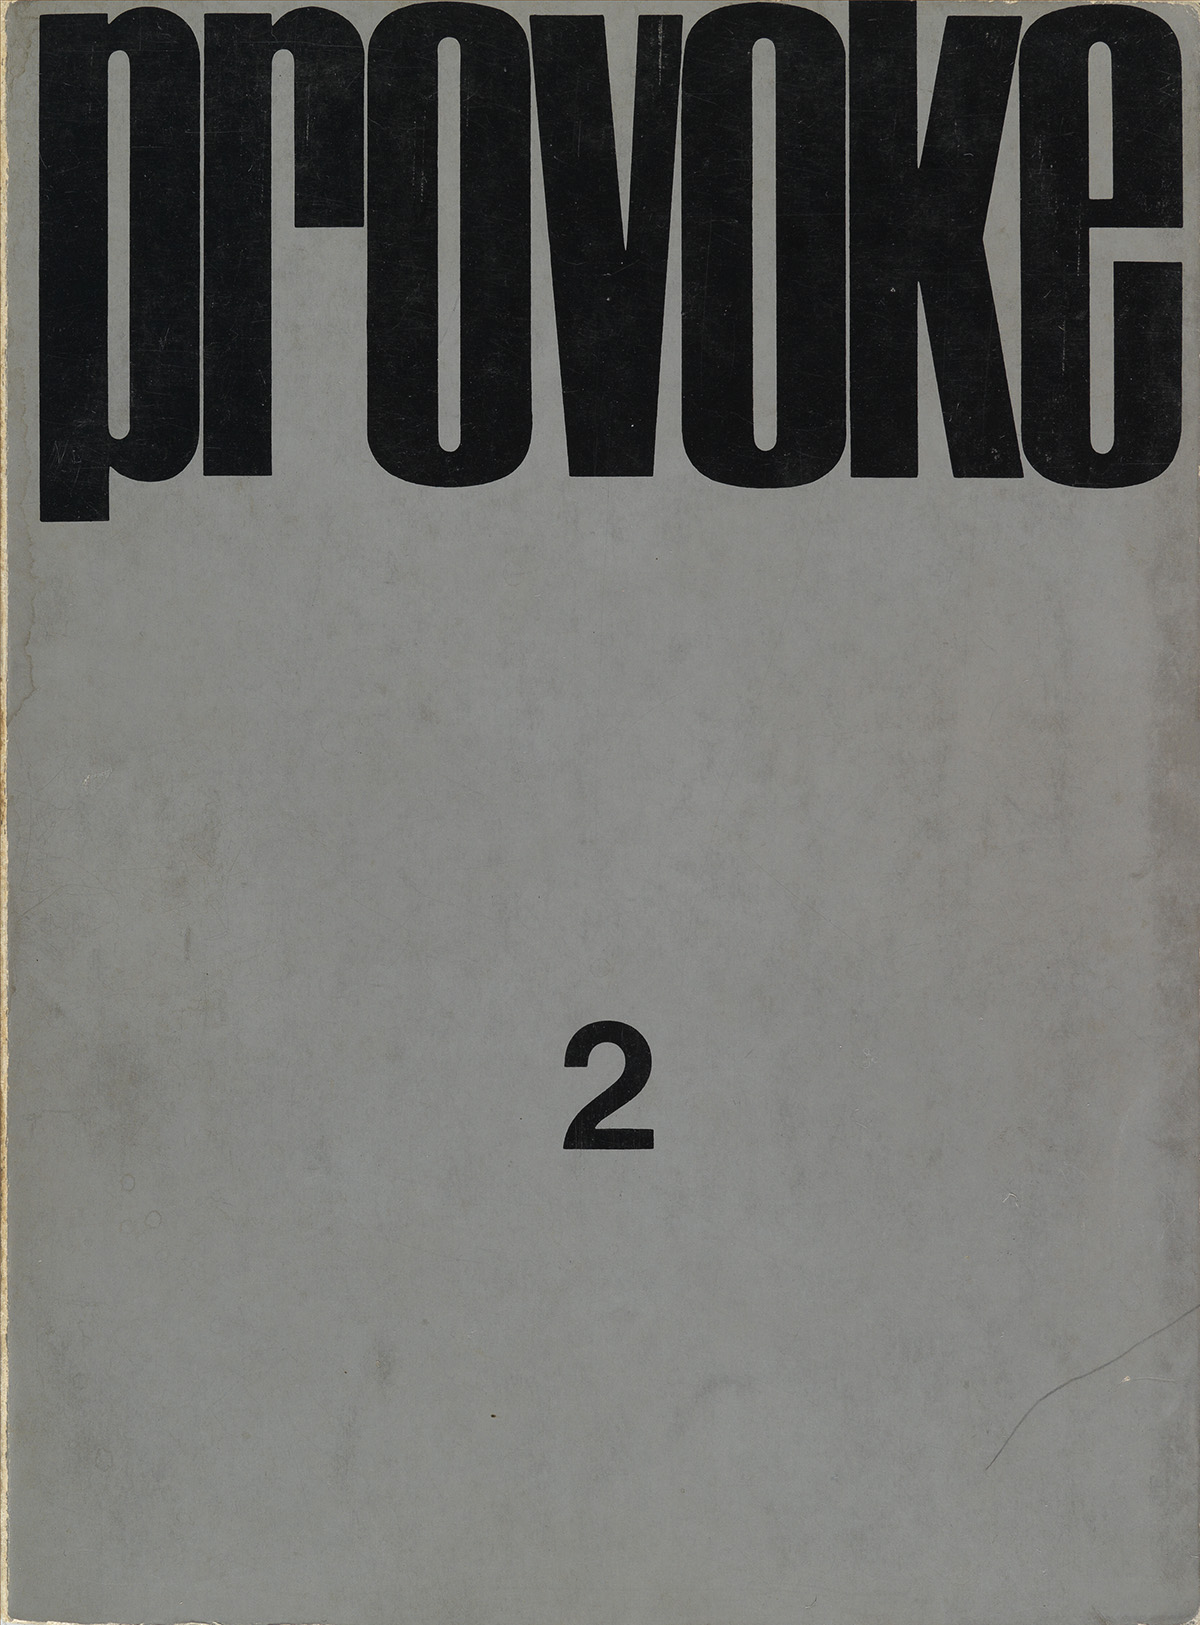 (PROVOKE)-Number-2-Eros